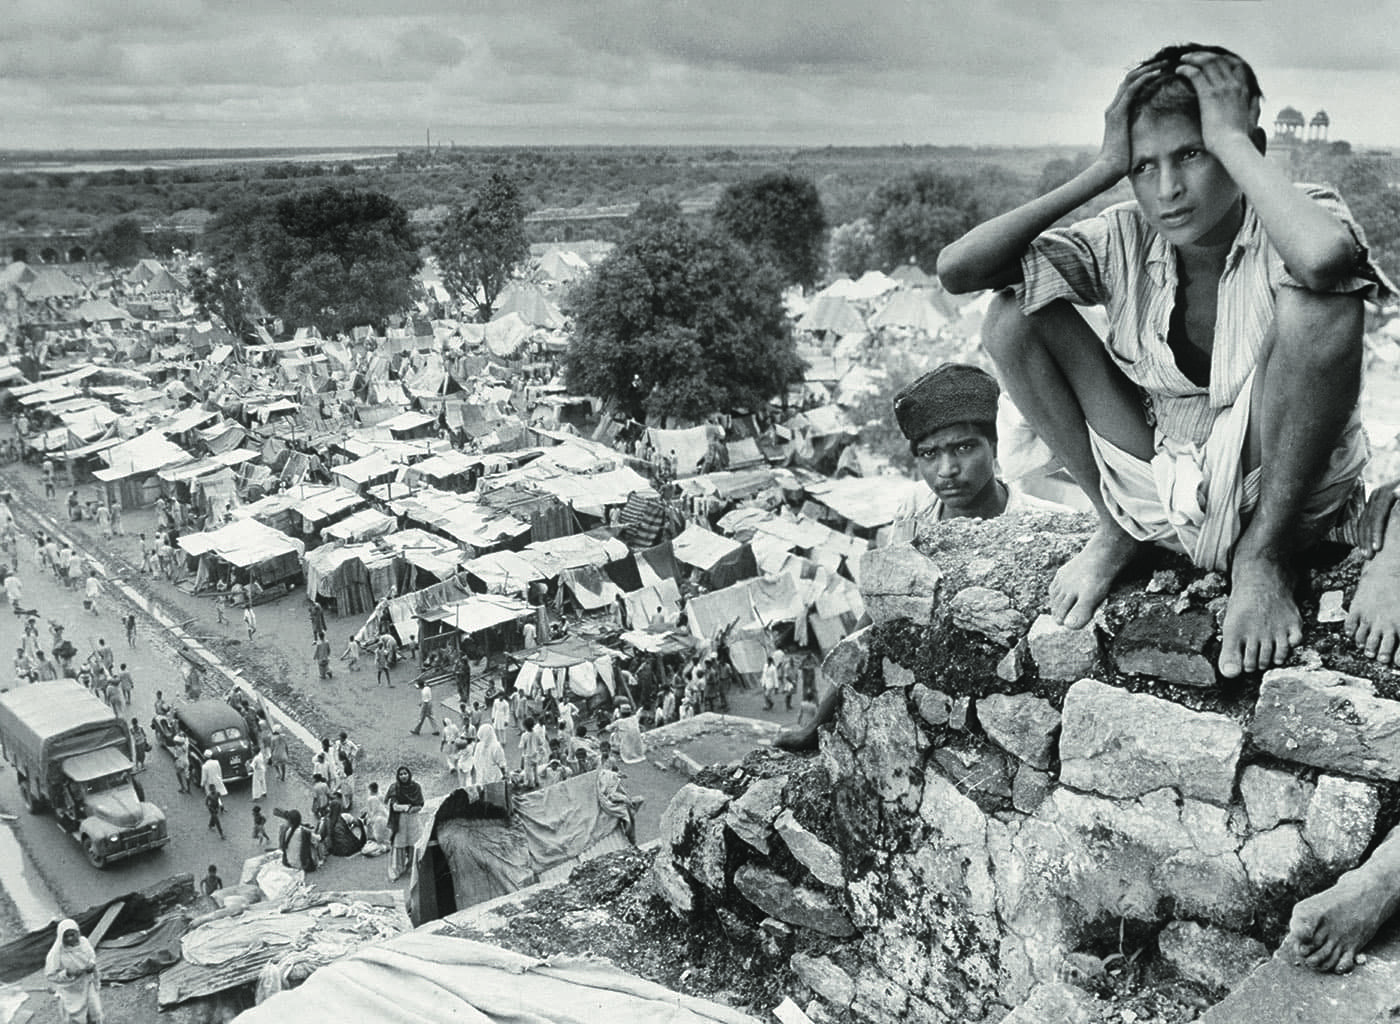 A young refugee in Delhi in August 1947 squats on the rubble of a ruined Sultanate monument, holding his head in despair. In the background, a vast Muslim refugee camp sprawls out as far as the eye can see. — Excerpted with permission from Witness to Life and Freedom, Roli Books, Delhi